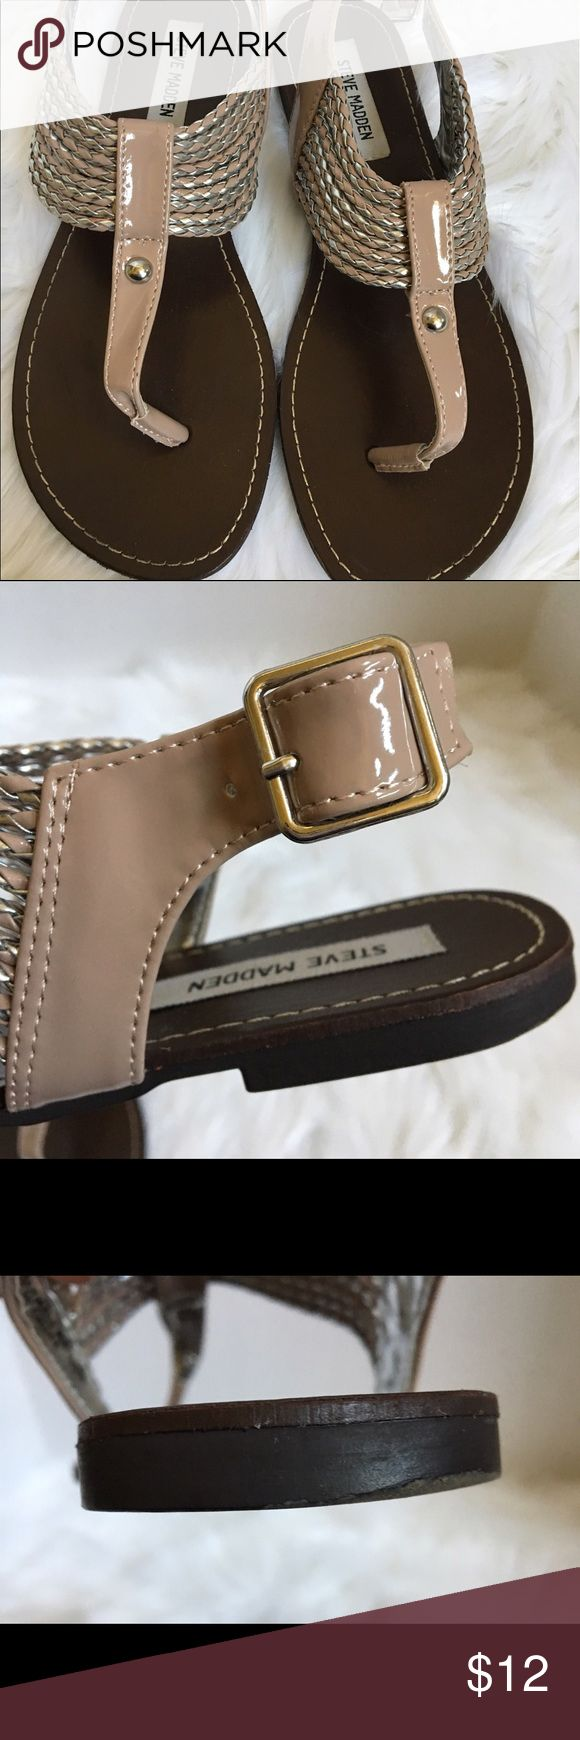 Steve Madden Sandal Cute patent leather Steve Madden sandal is beige and silver. Worn a few times. Only minor sign of wear is located on heel which is shown in pictures. Steve Madden Shoes Sandals